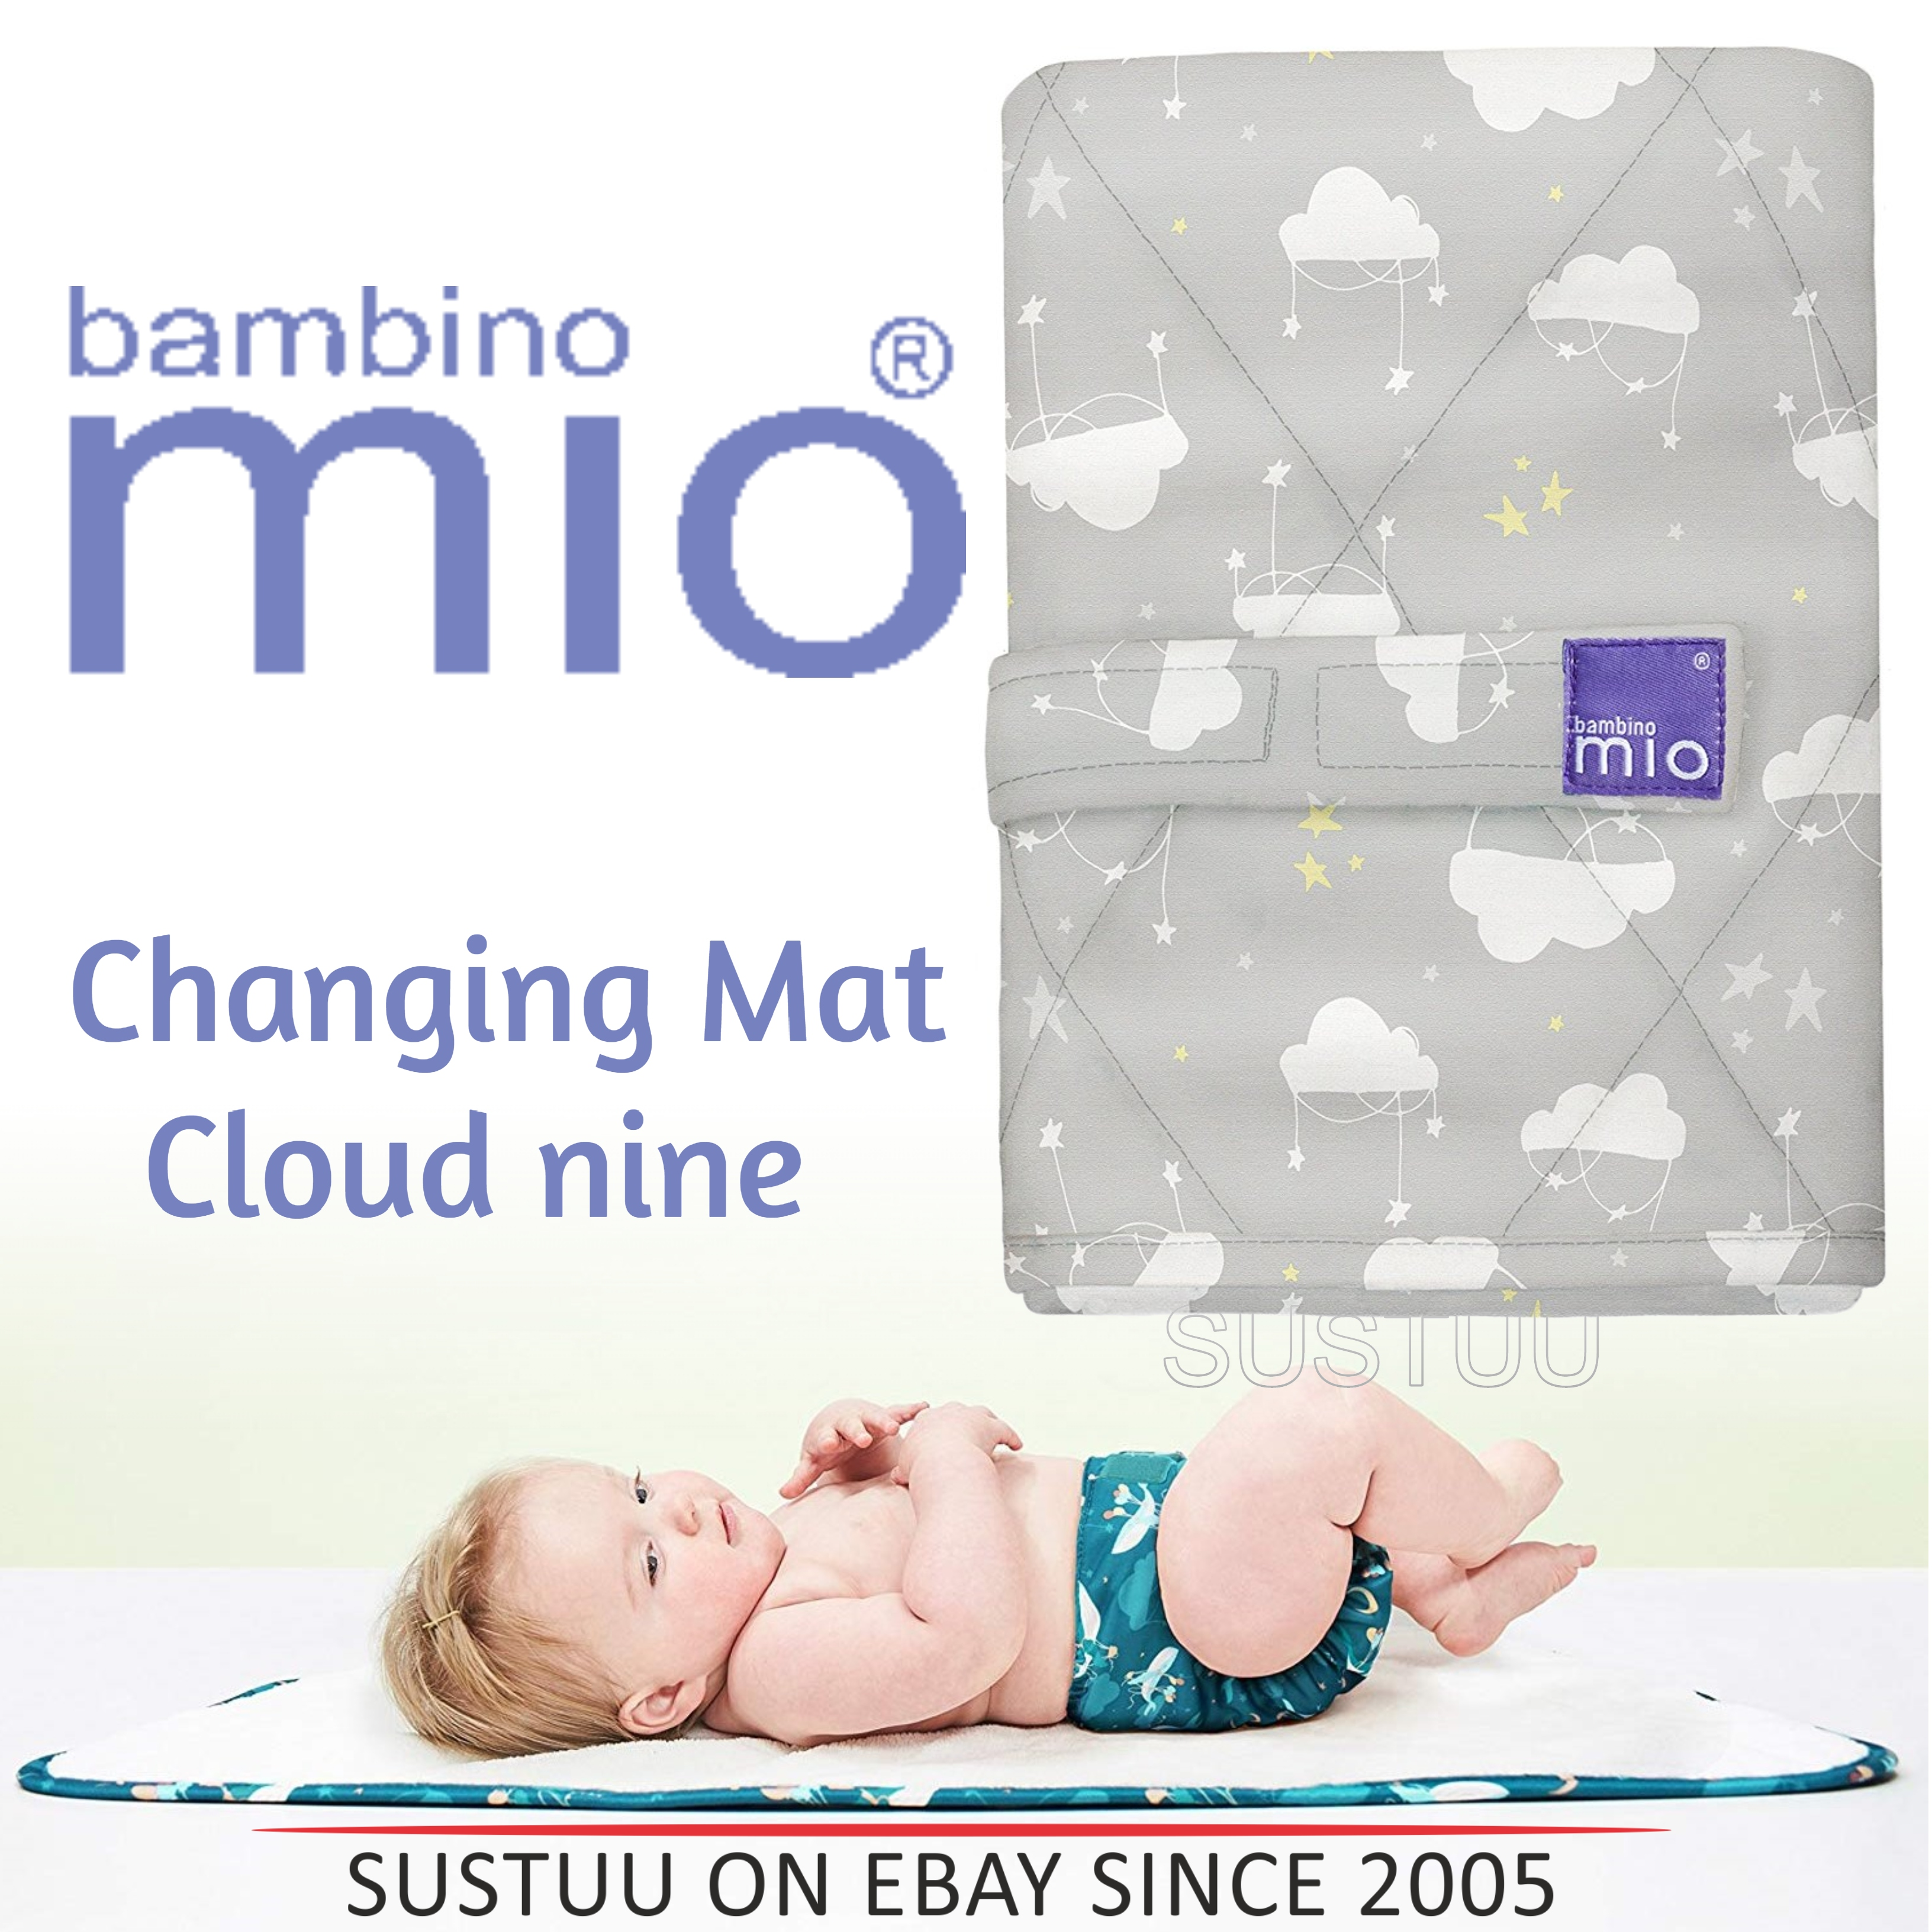 Bambino Mio Changing Mat|For Kid's Changing Nappy|Indoor/Outdoor|Cloud Nine|